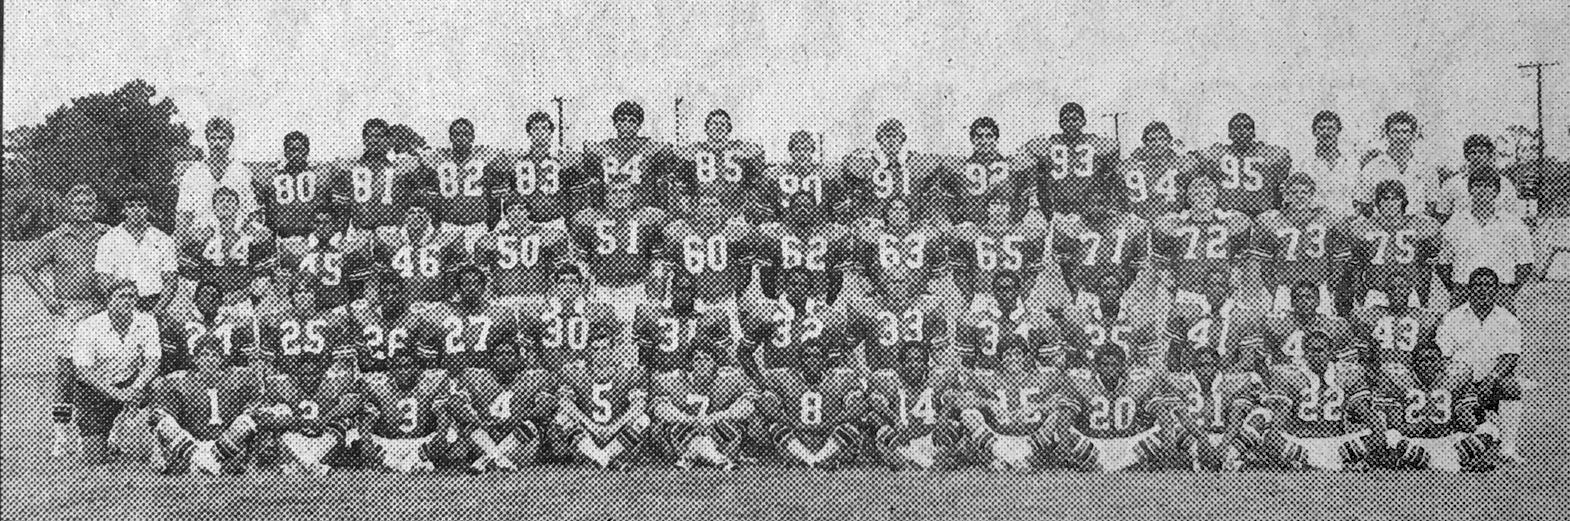 Vbhs 1981 State Champs 08